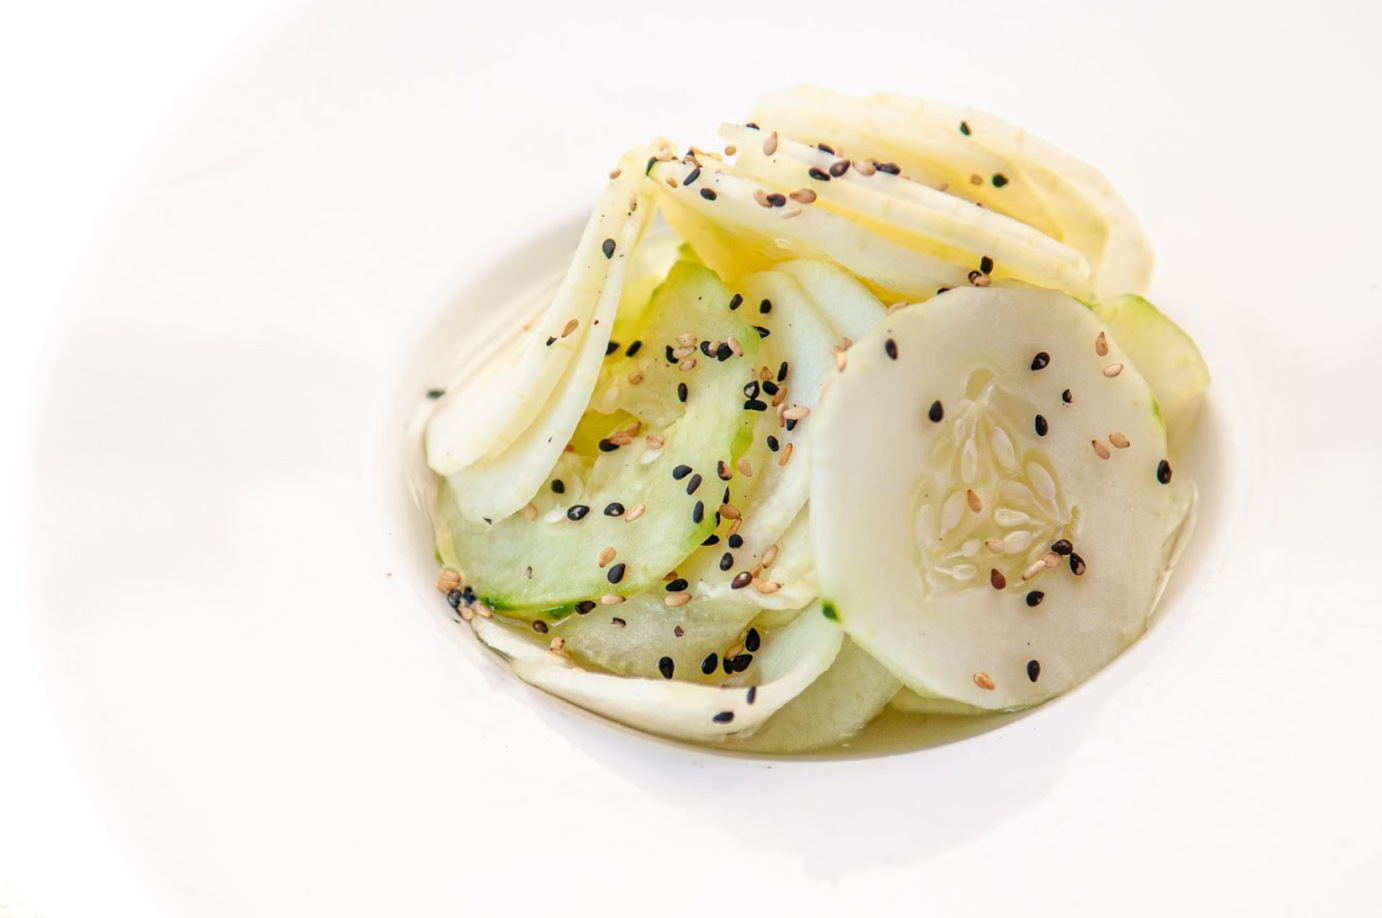 Zucchini and seeds salad